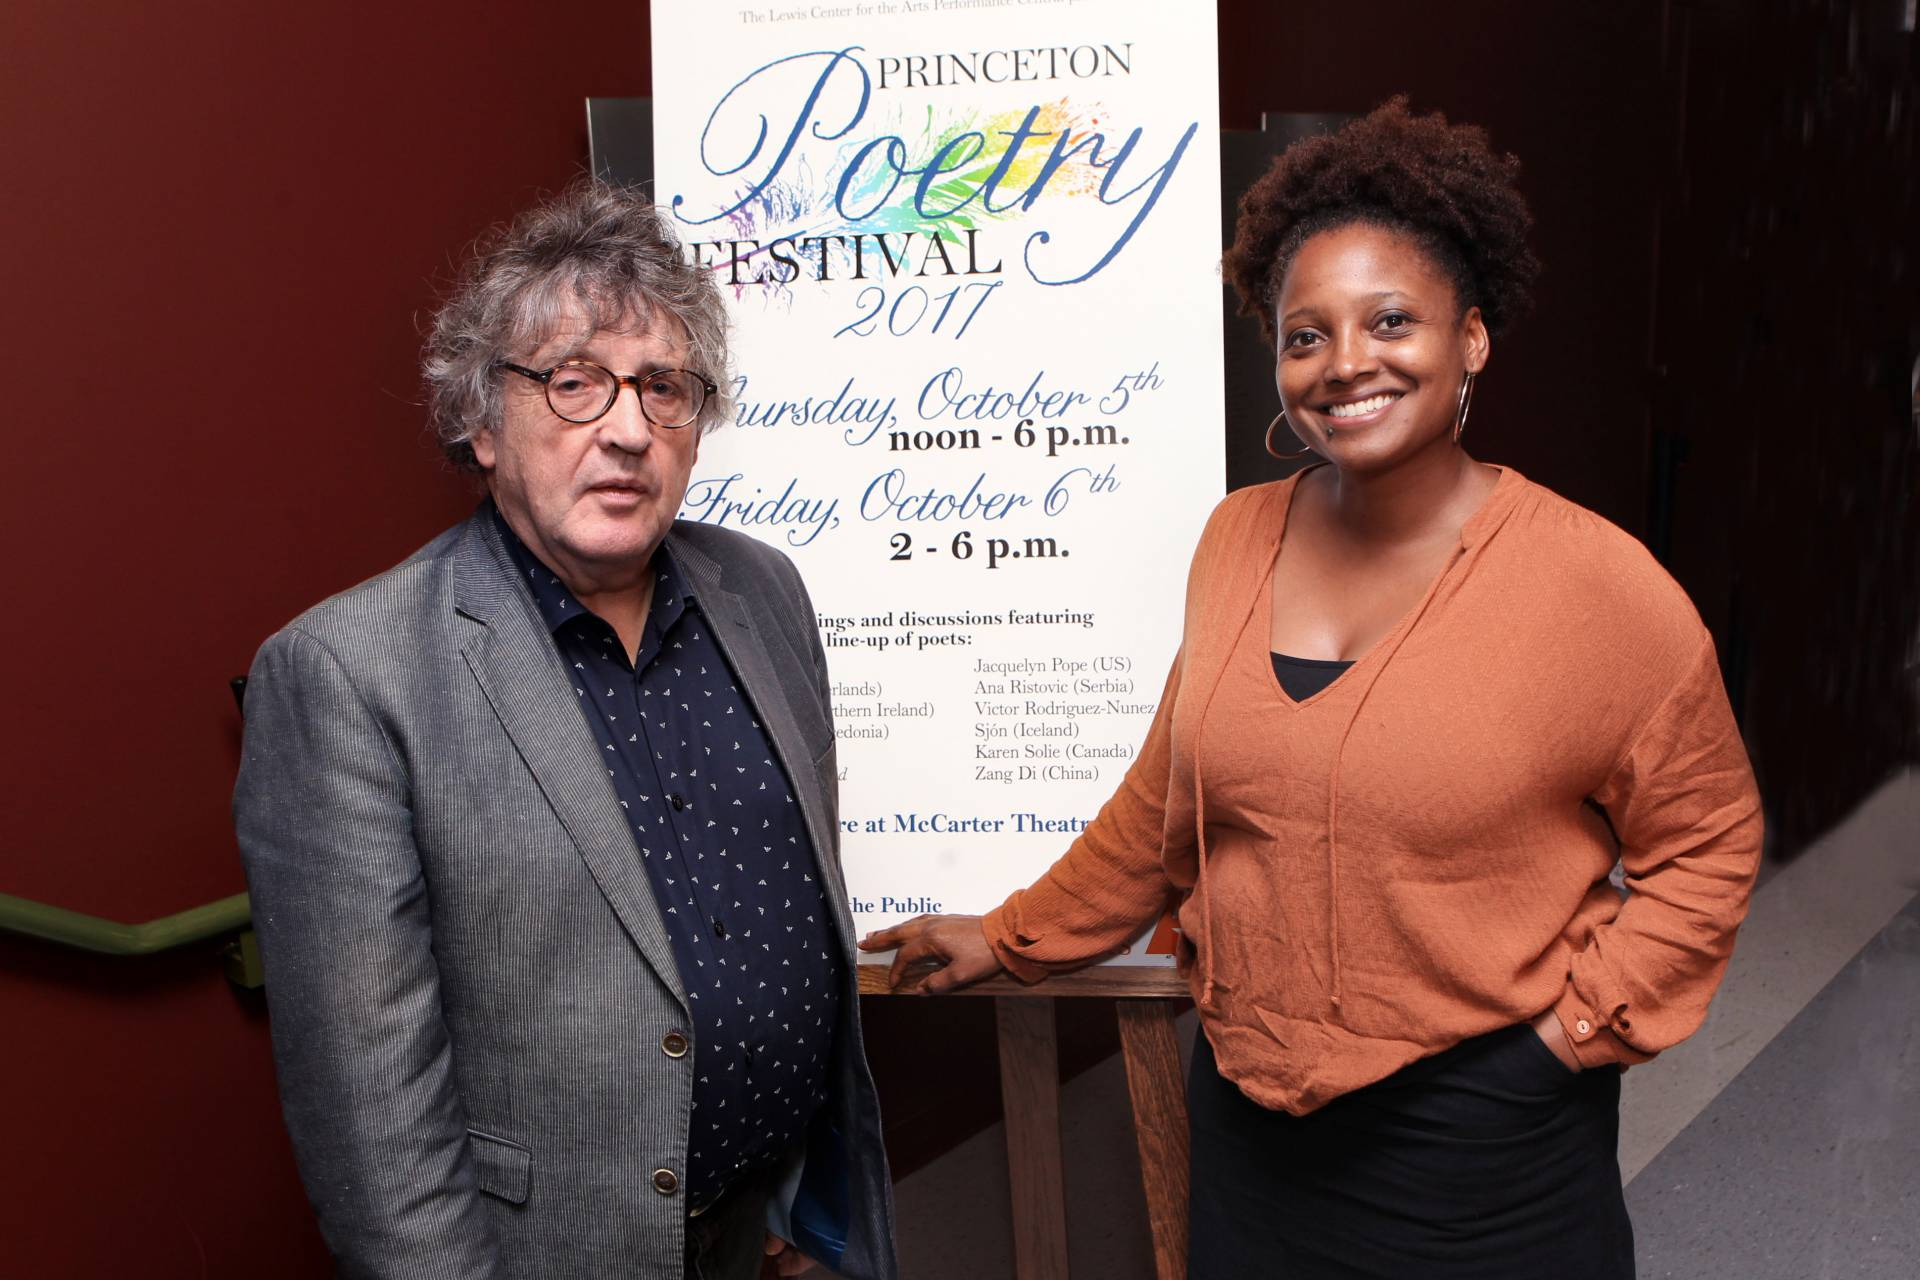 Paul Muldoon and Tracy Smith stand by Poetry Festival poster